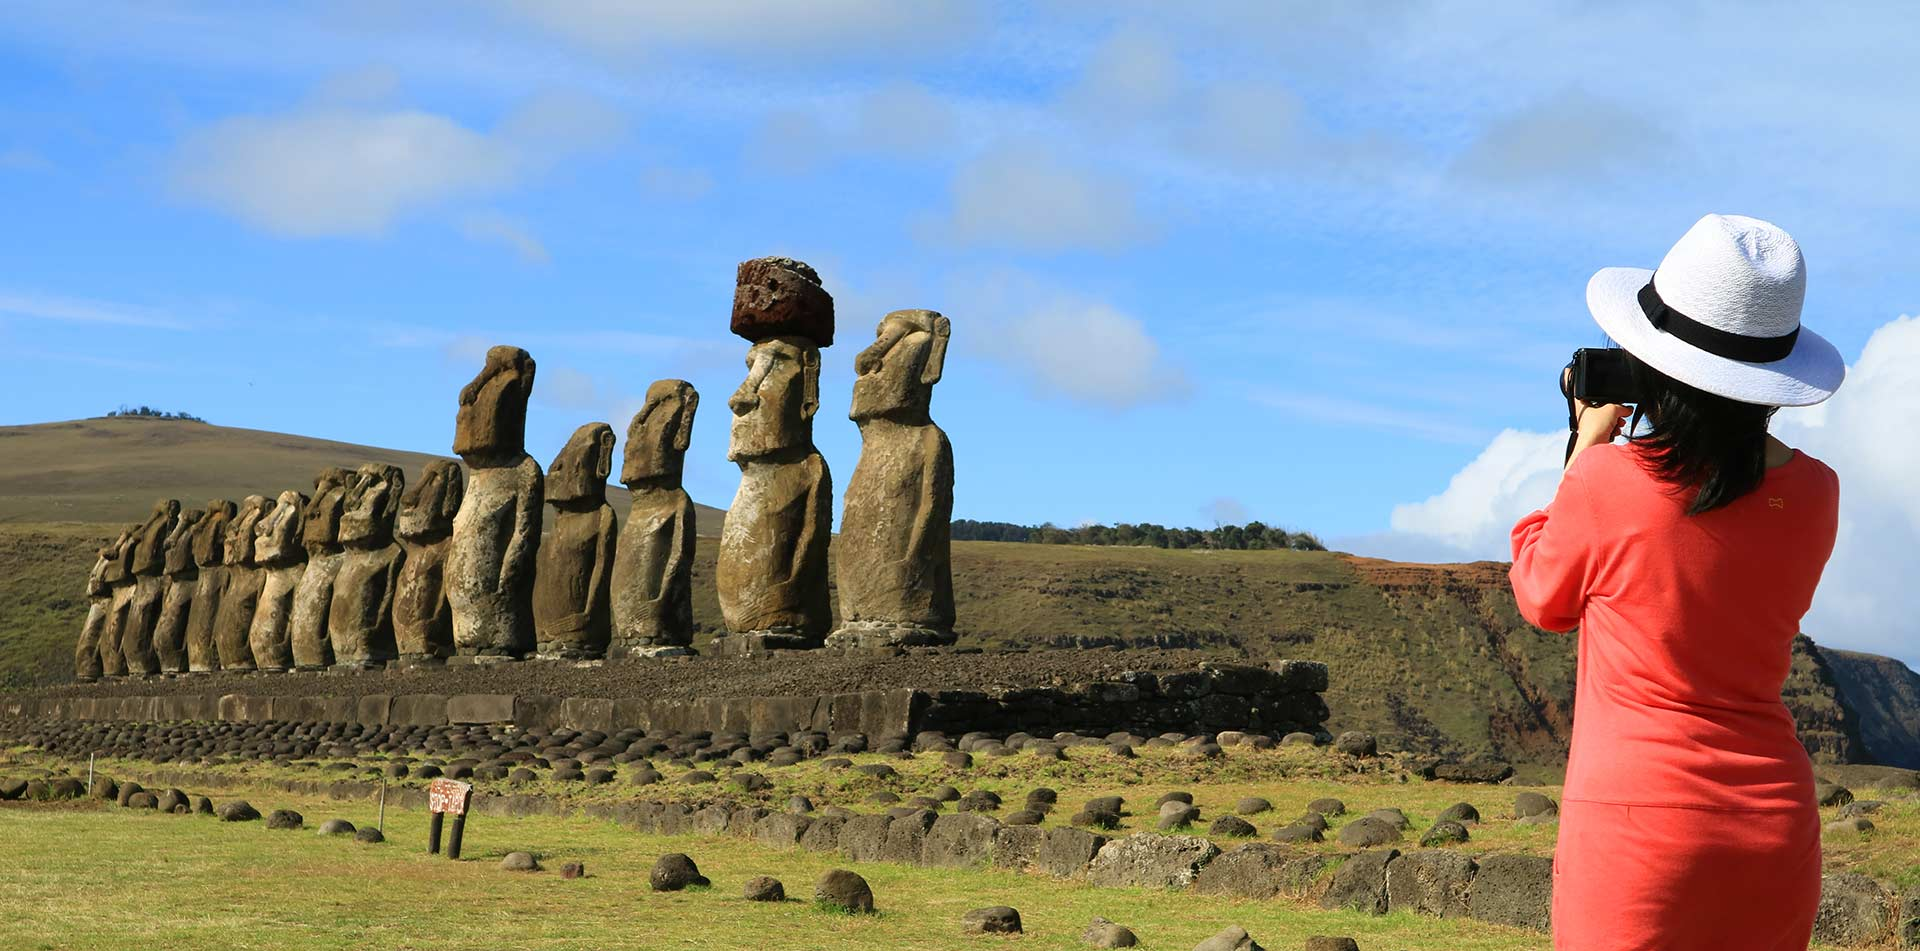 South America Chile Woman Taking Pictures Famous Moai Image - luxury vacation destination